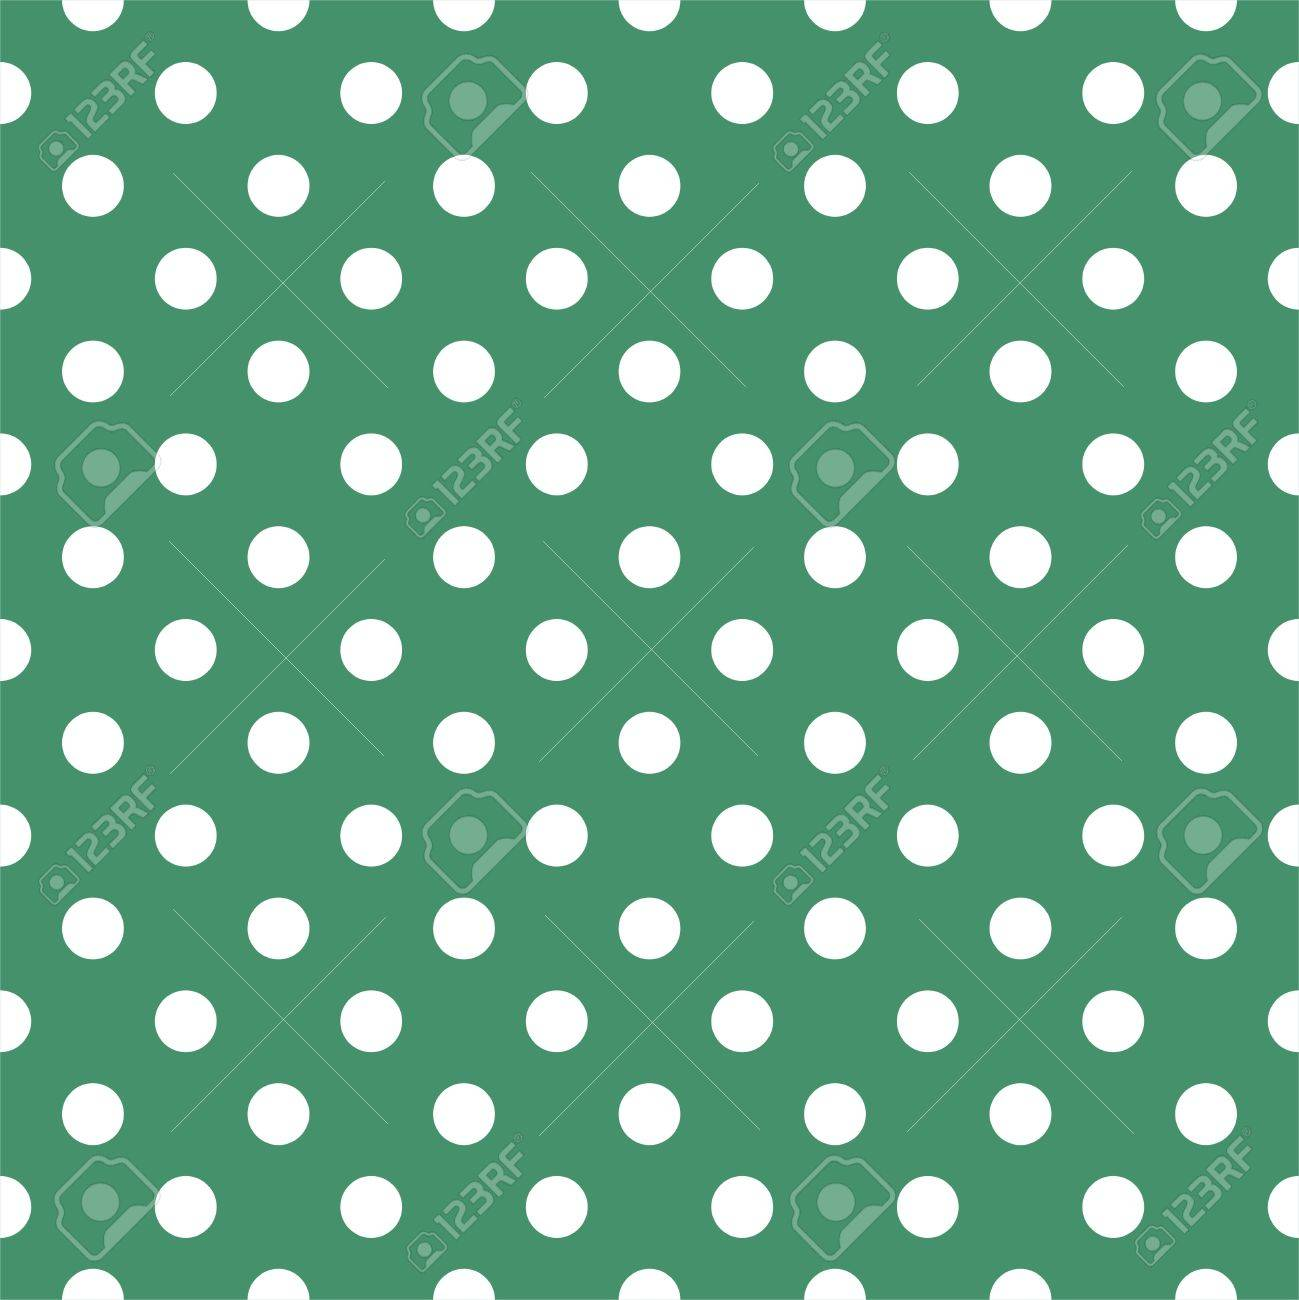 seamless pattern with white polka dots on a retro bottle green background. For cards, invitations, Stock Vector - 15439312